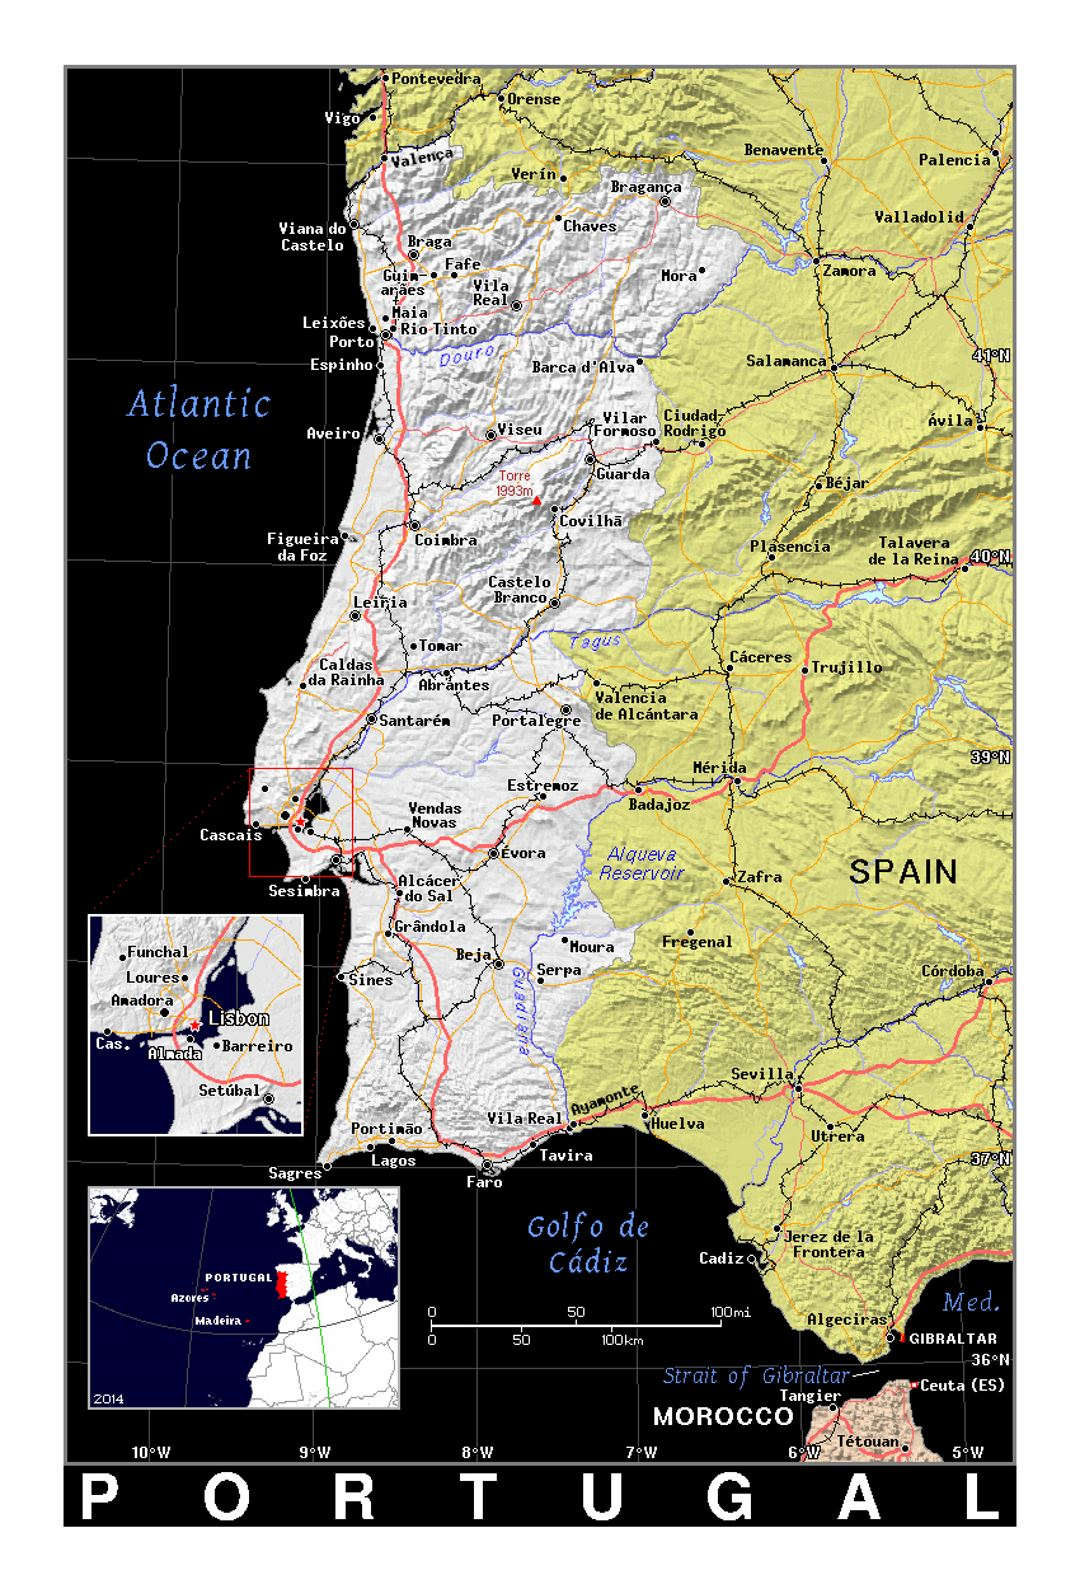 Image of: Detailed Political Map Of Portugal With Relief In Black Portugal Europe Mapsland Maps Of The World